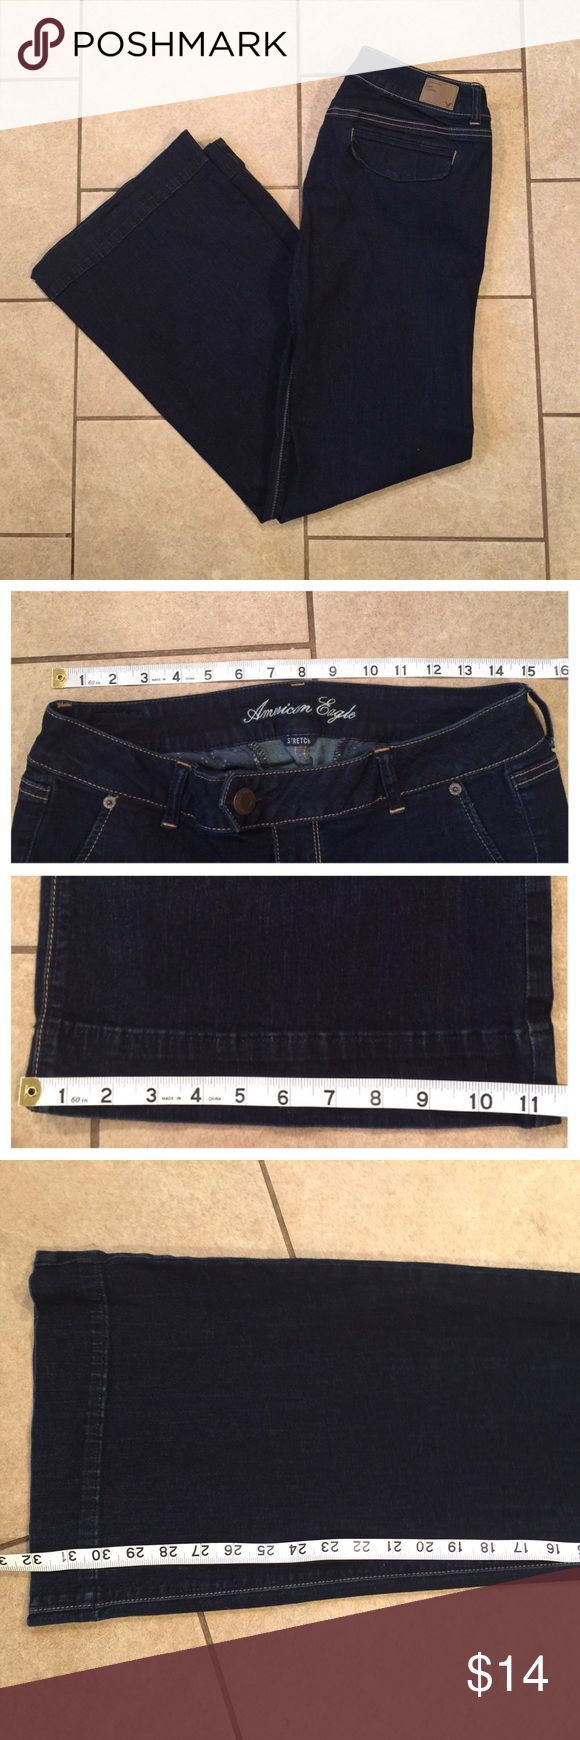 American Eagle Stretch Trouser Jeans 10 Regular Measurements as shown, fabric content is 98% cotton, 2% spandex. American Eagle Outfitters Jeans Flare & Wide Leg